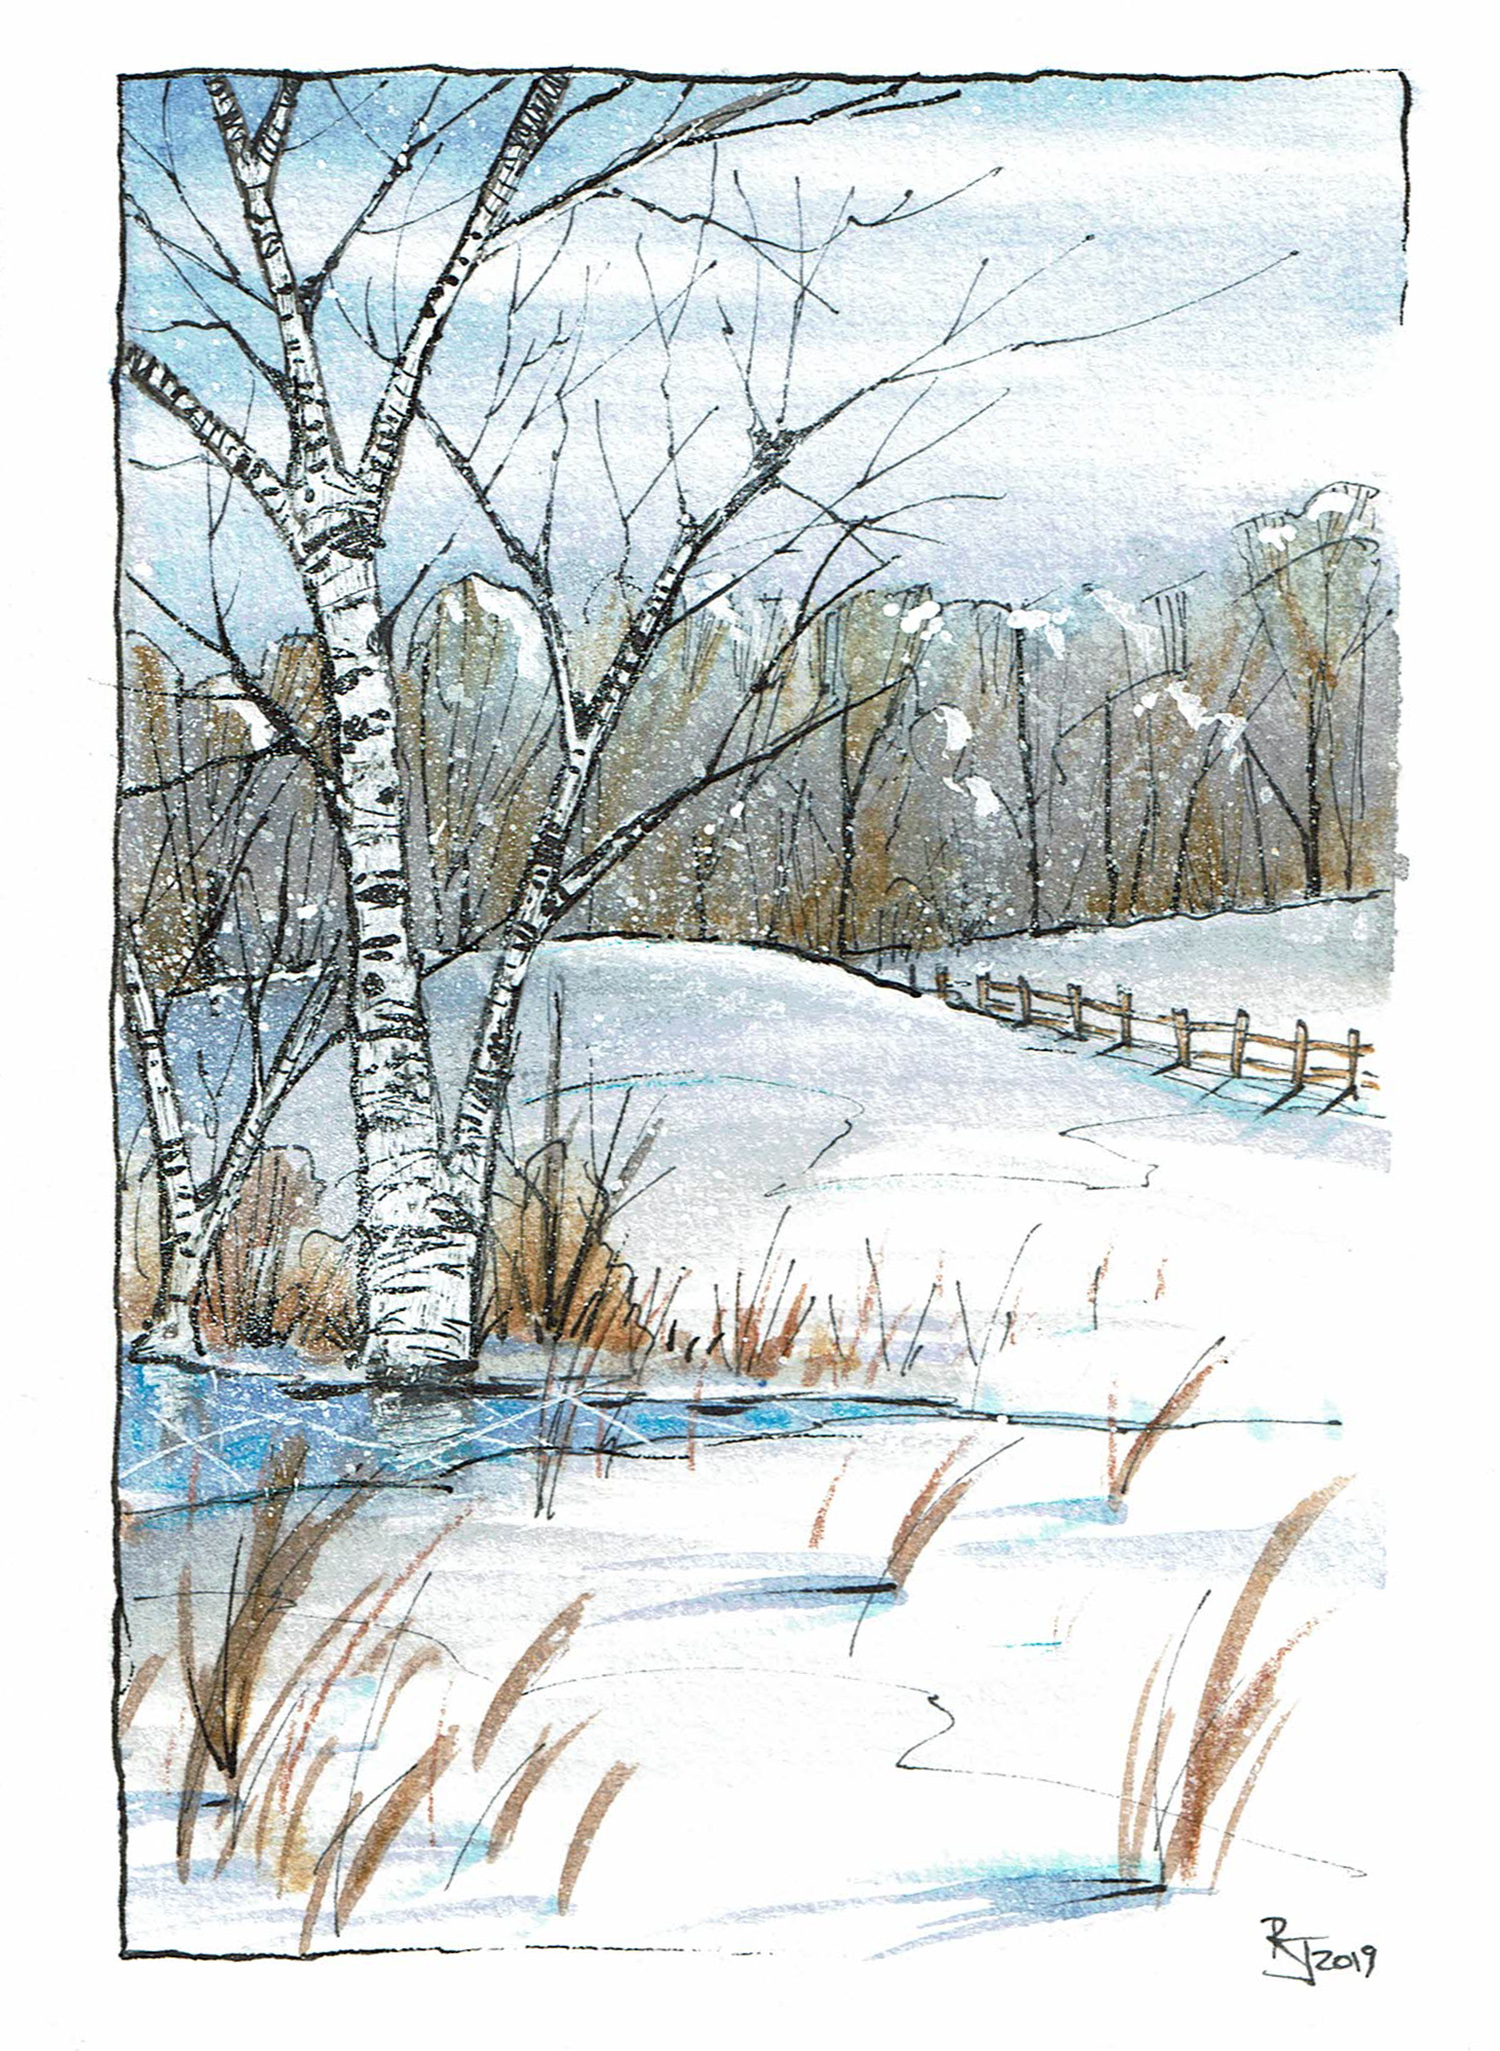 Winter birch scene